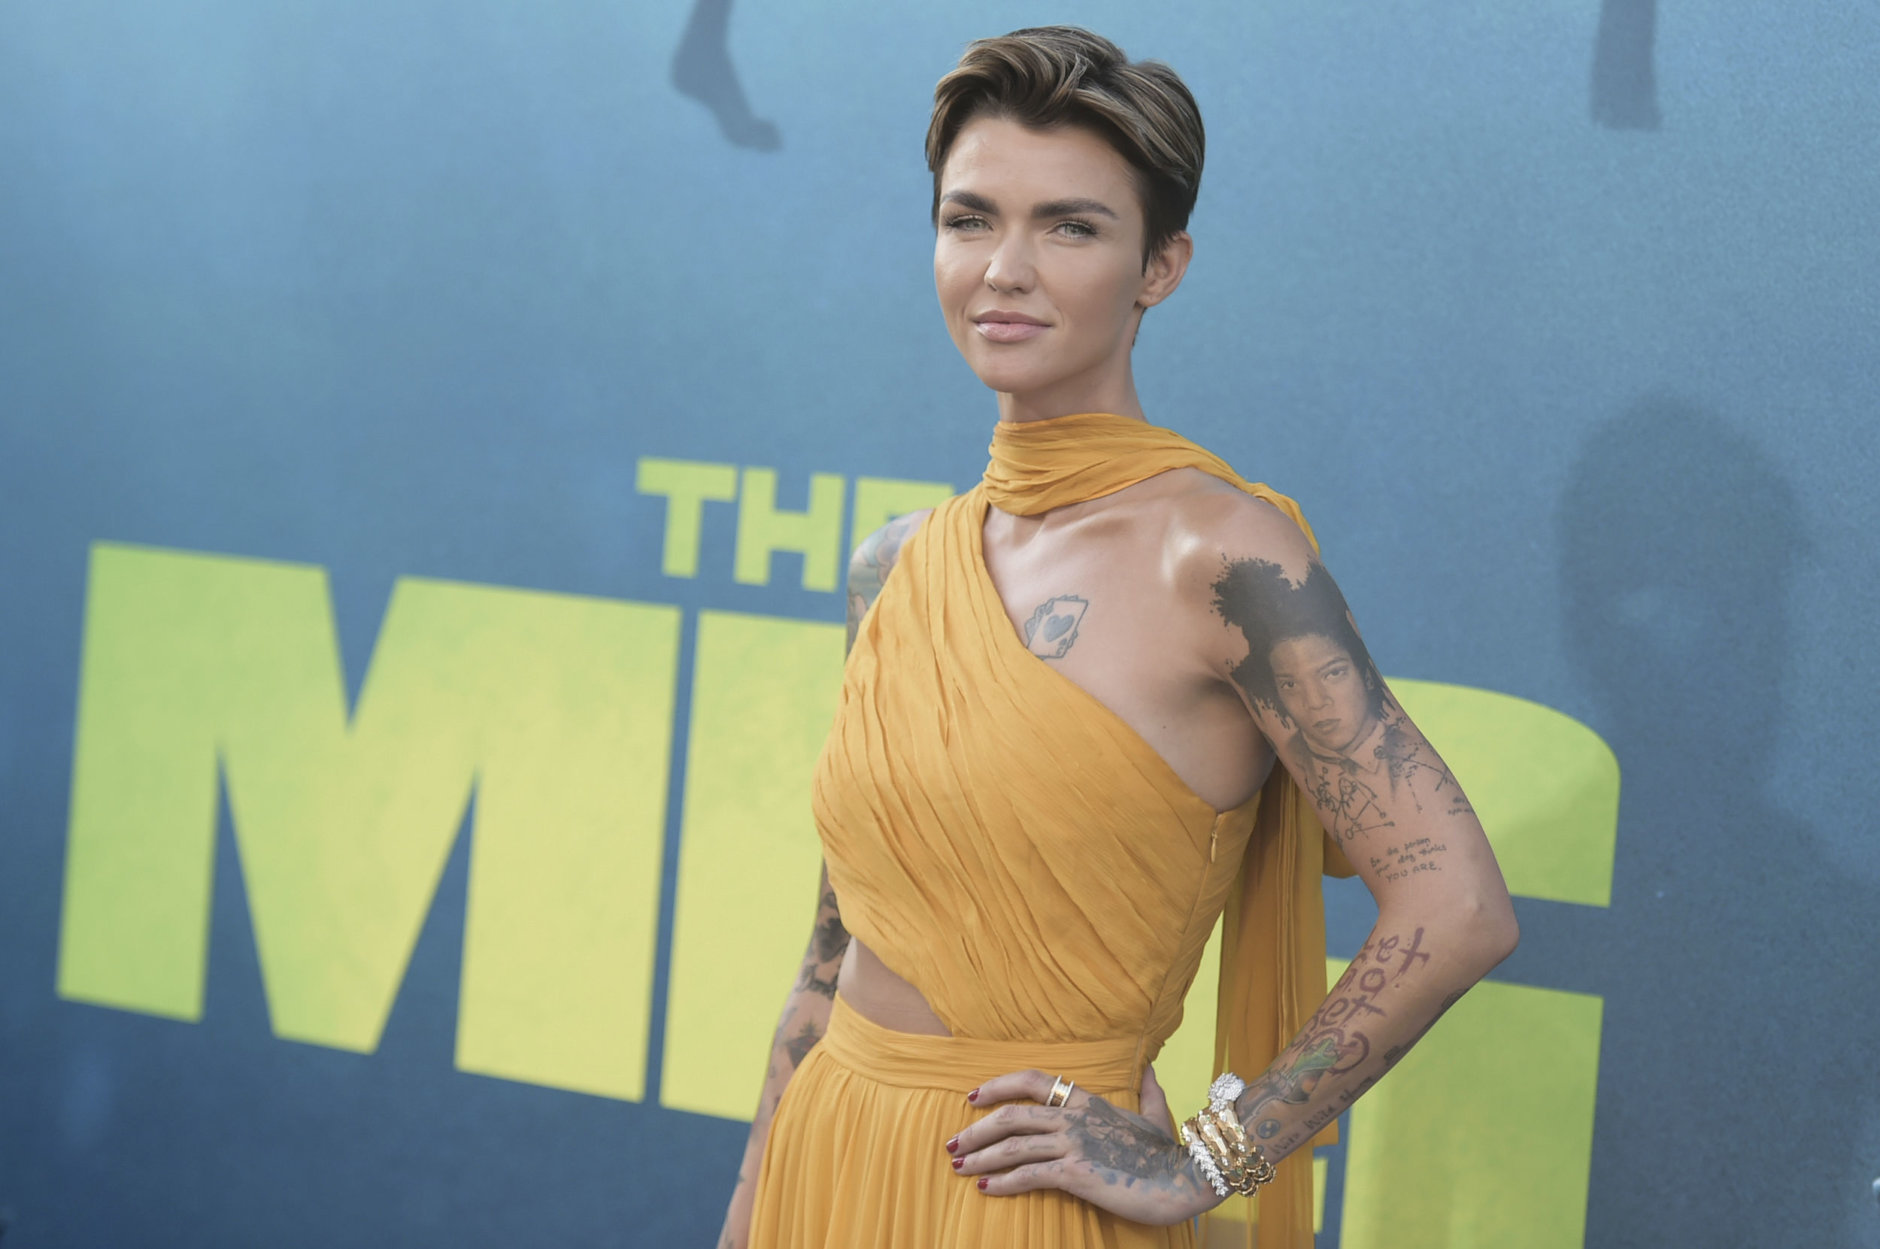 """Ruby Rose attends the LA Premiere of """"The Meg"""" at TCL Chinese Theatre on Monday, Aug. 6, 2018, in Los Angeles. (Photo by Richard Shotwell/Invision/AP)"""